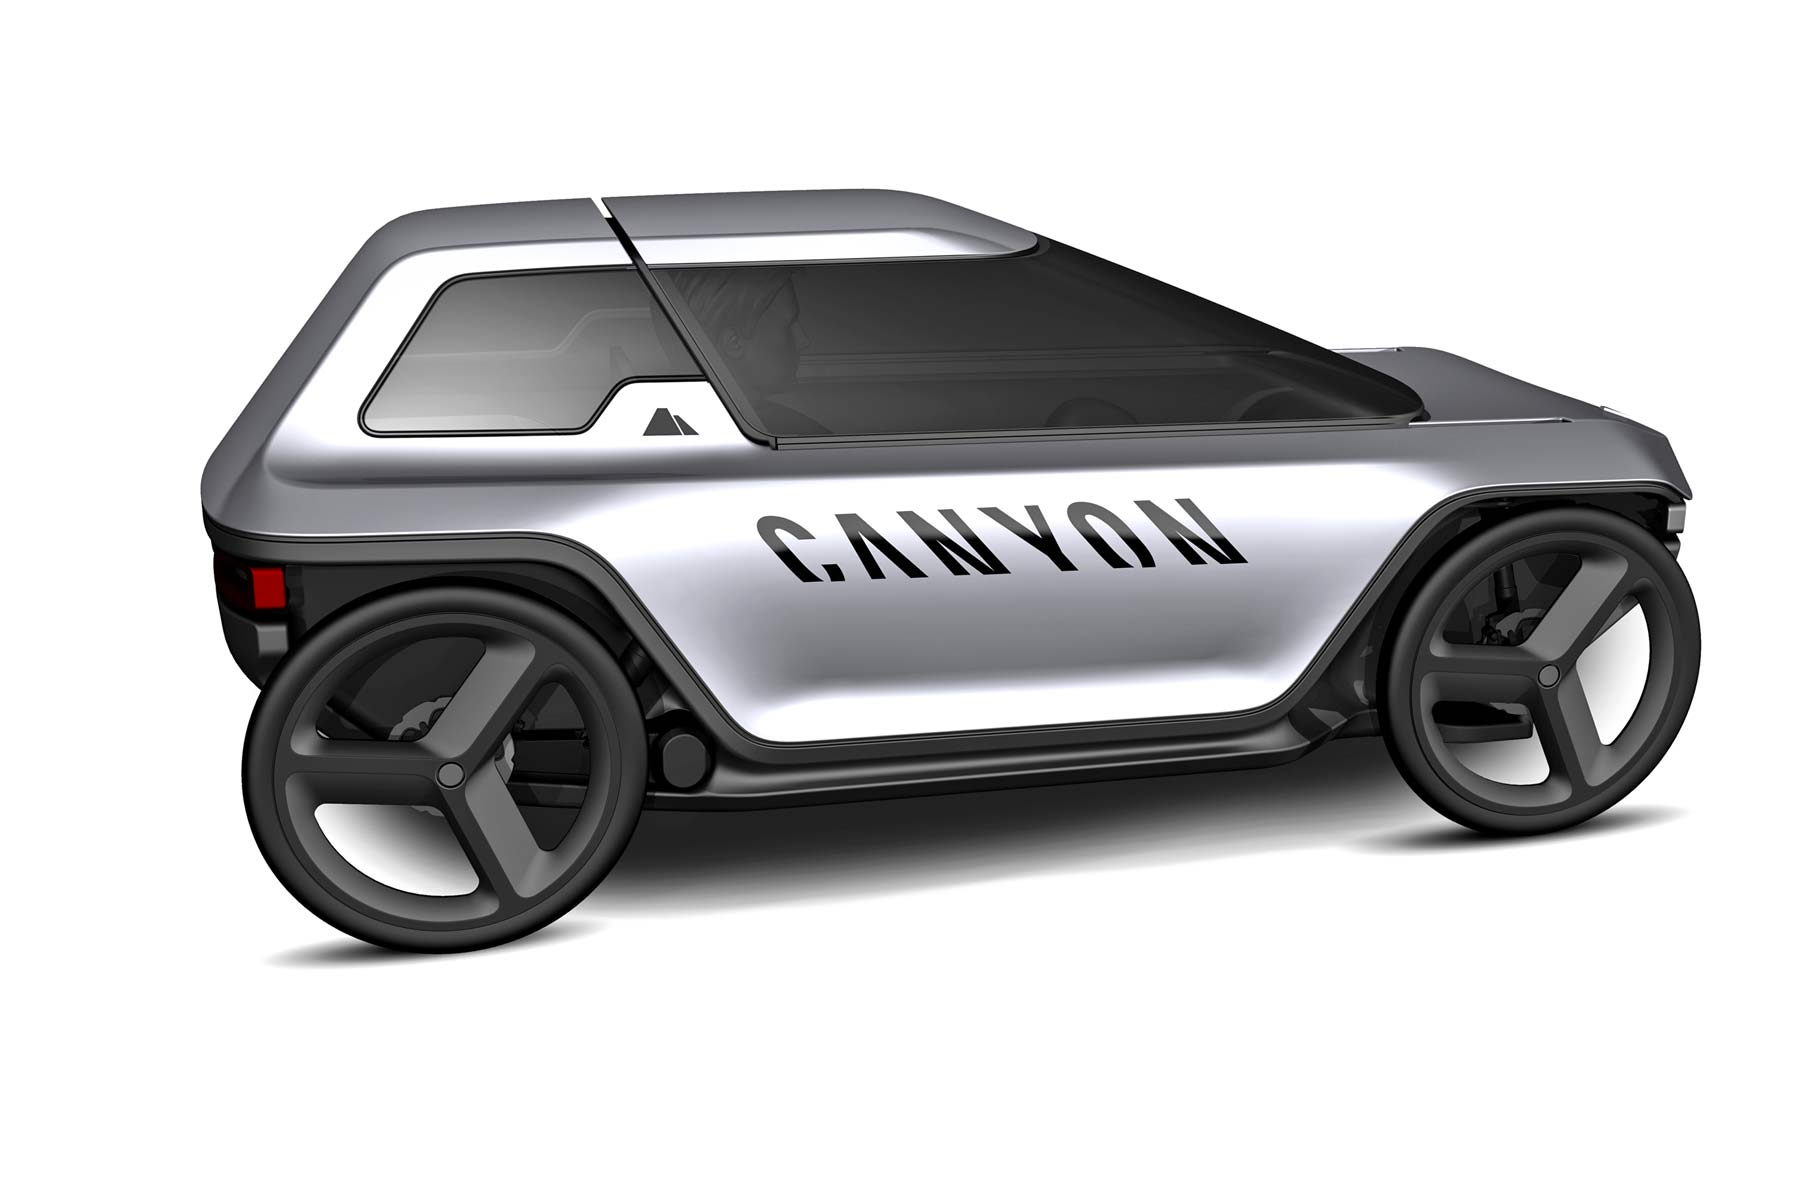 Canyon Future Mobility Concept, electric-assist commuter pedal car, prototype micro car, rendering